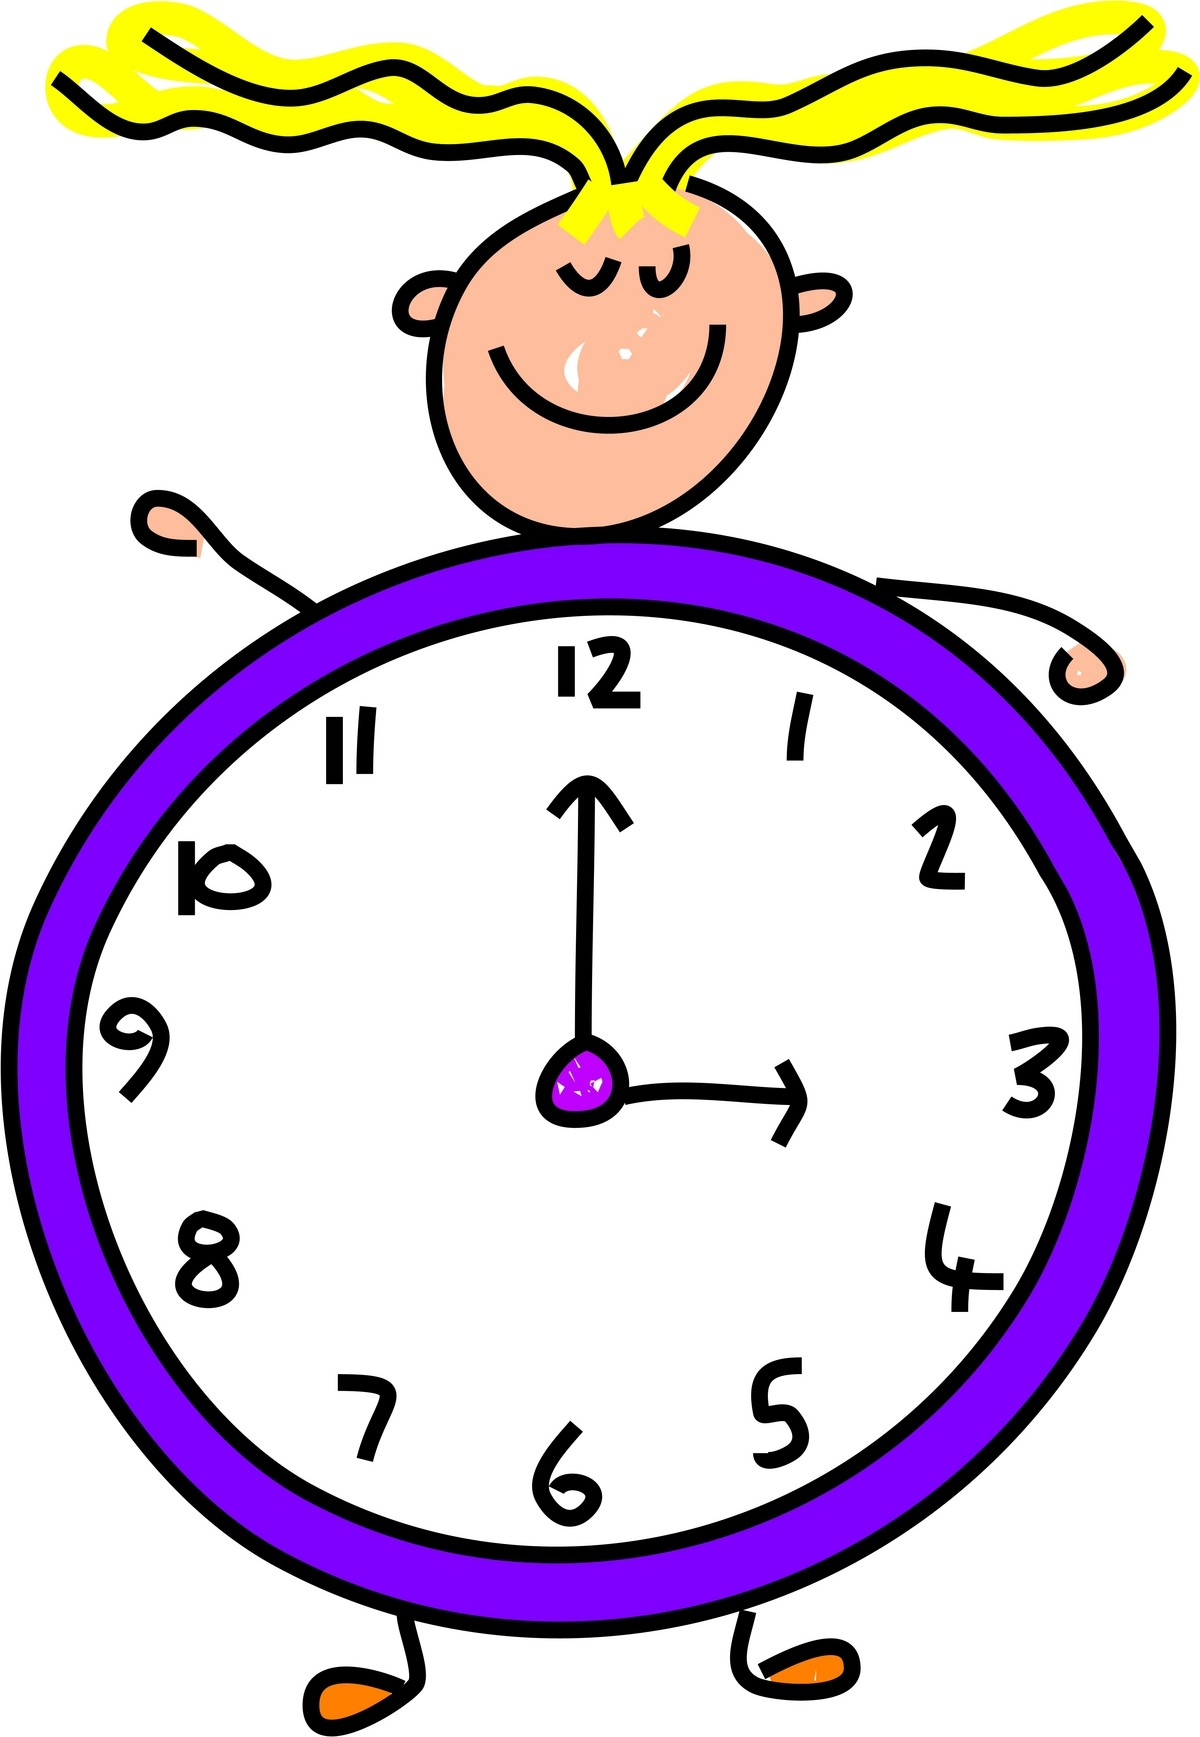 Timing Clipart-timing clipart-18